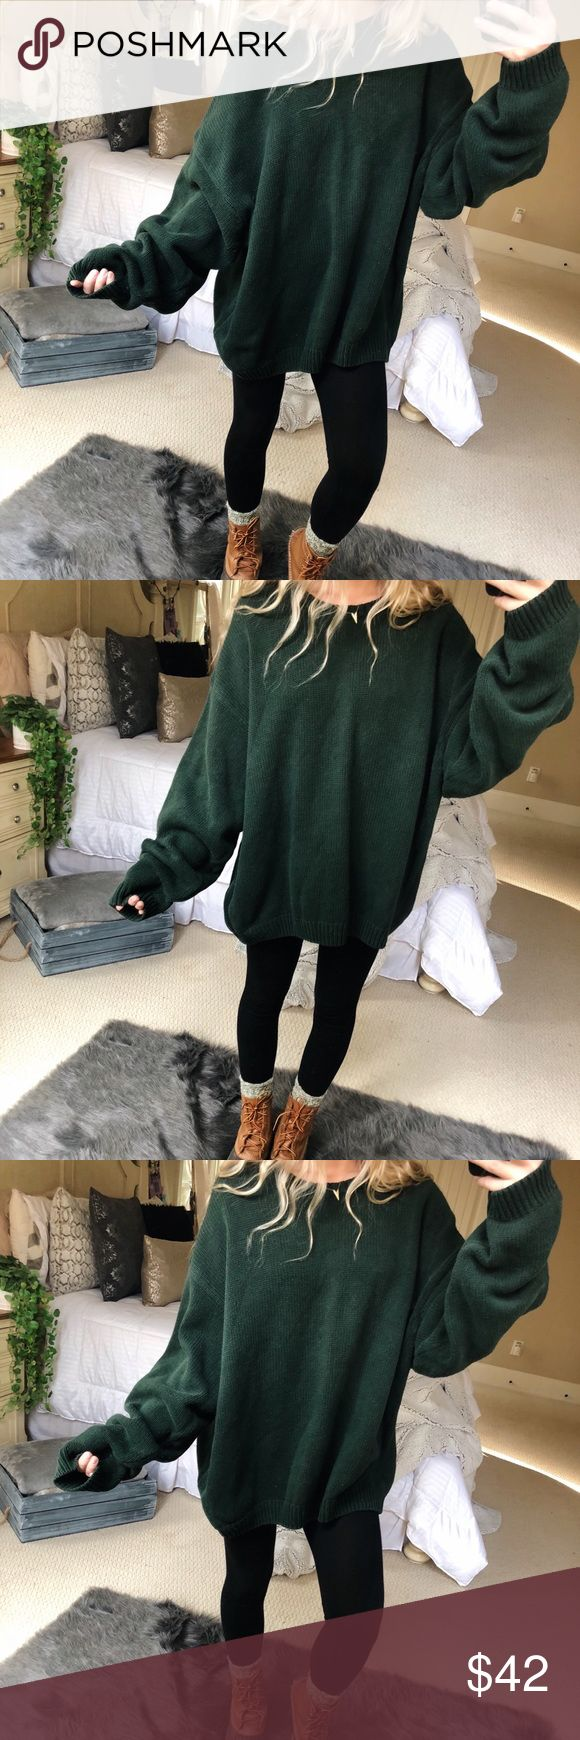 oversized forest green knit beautiful forest green oversized chunky knit sweater. super cozy and cute! fits a size large best 🌲🍂☕️ — • all offers 100% welcomed + encouraged • bundle for a private discount of at least 20% off  • orders guaranteed to ship within 1-2 days unless stated otherwise • ask me any questions if you ever have any! xo Sweaters